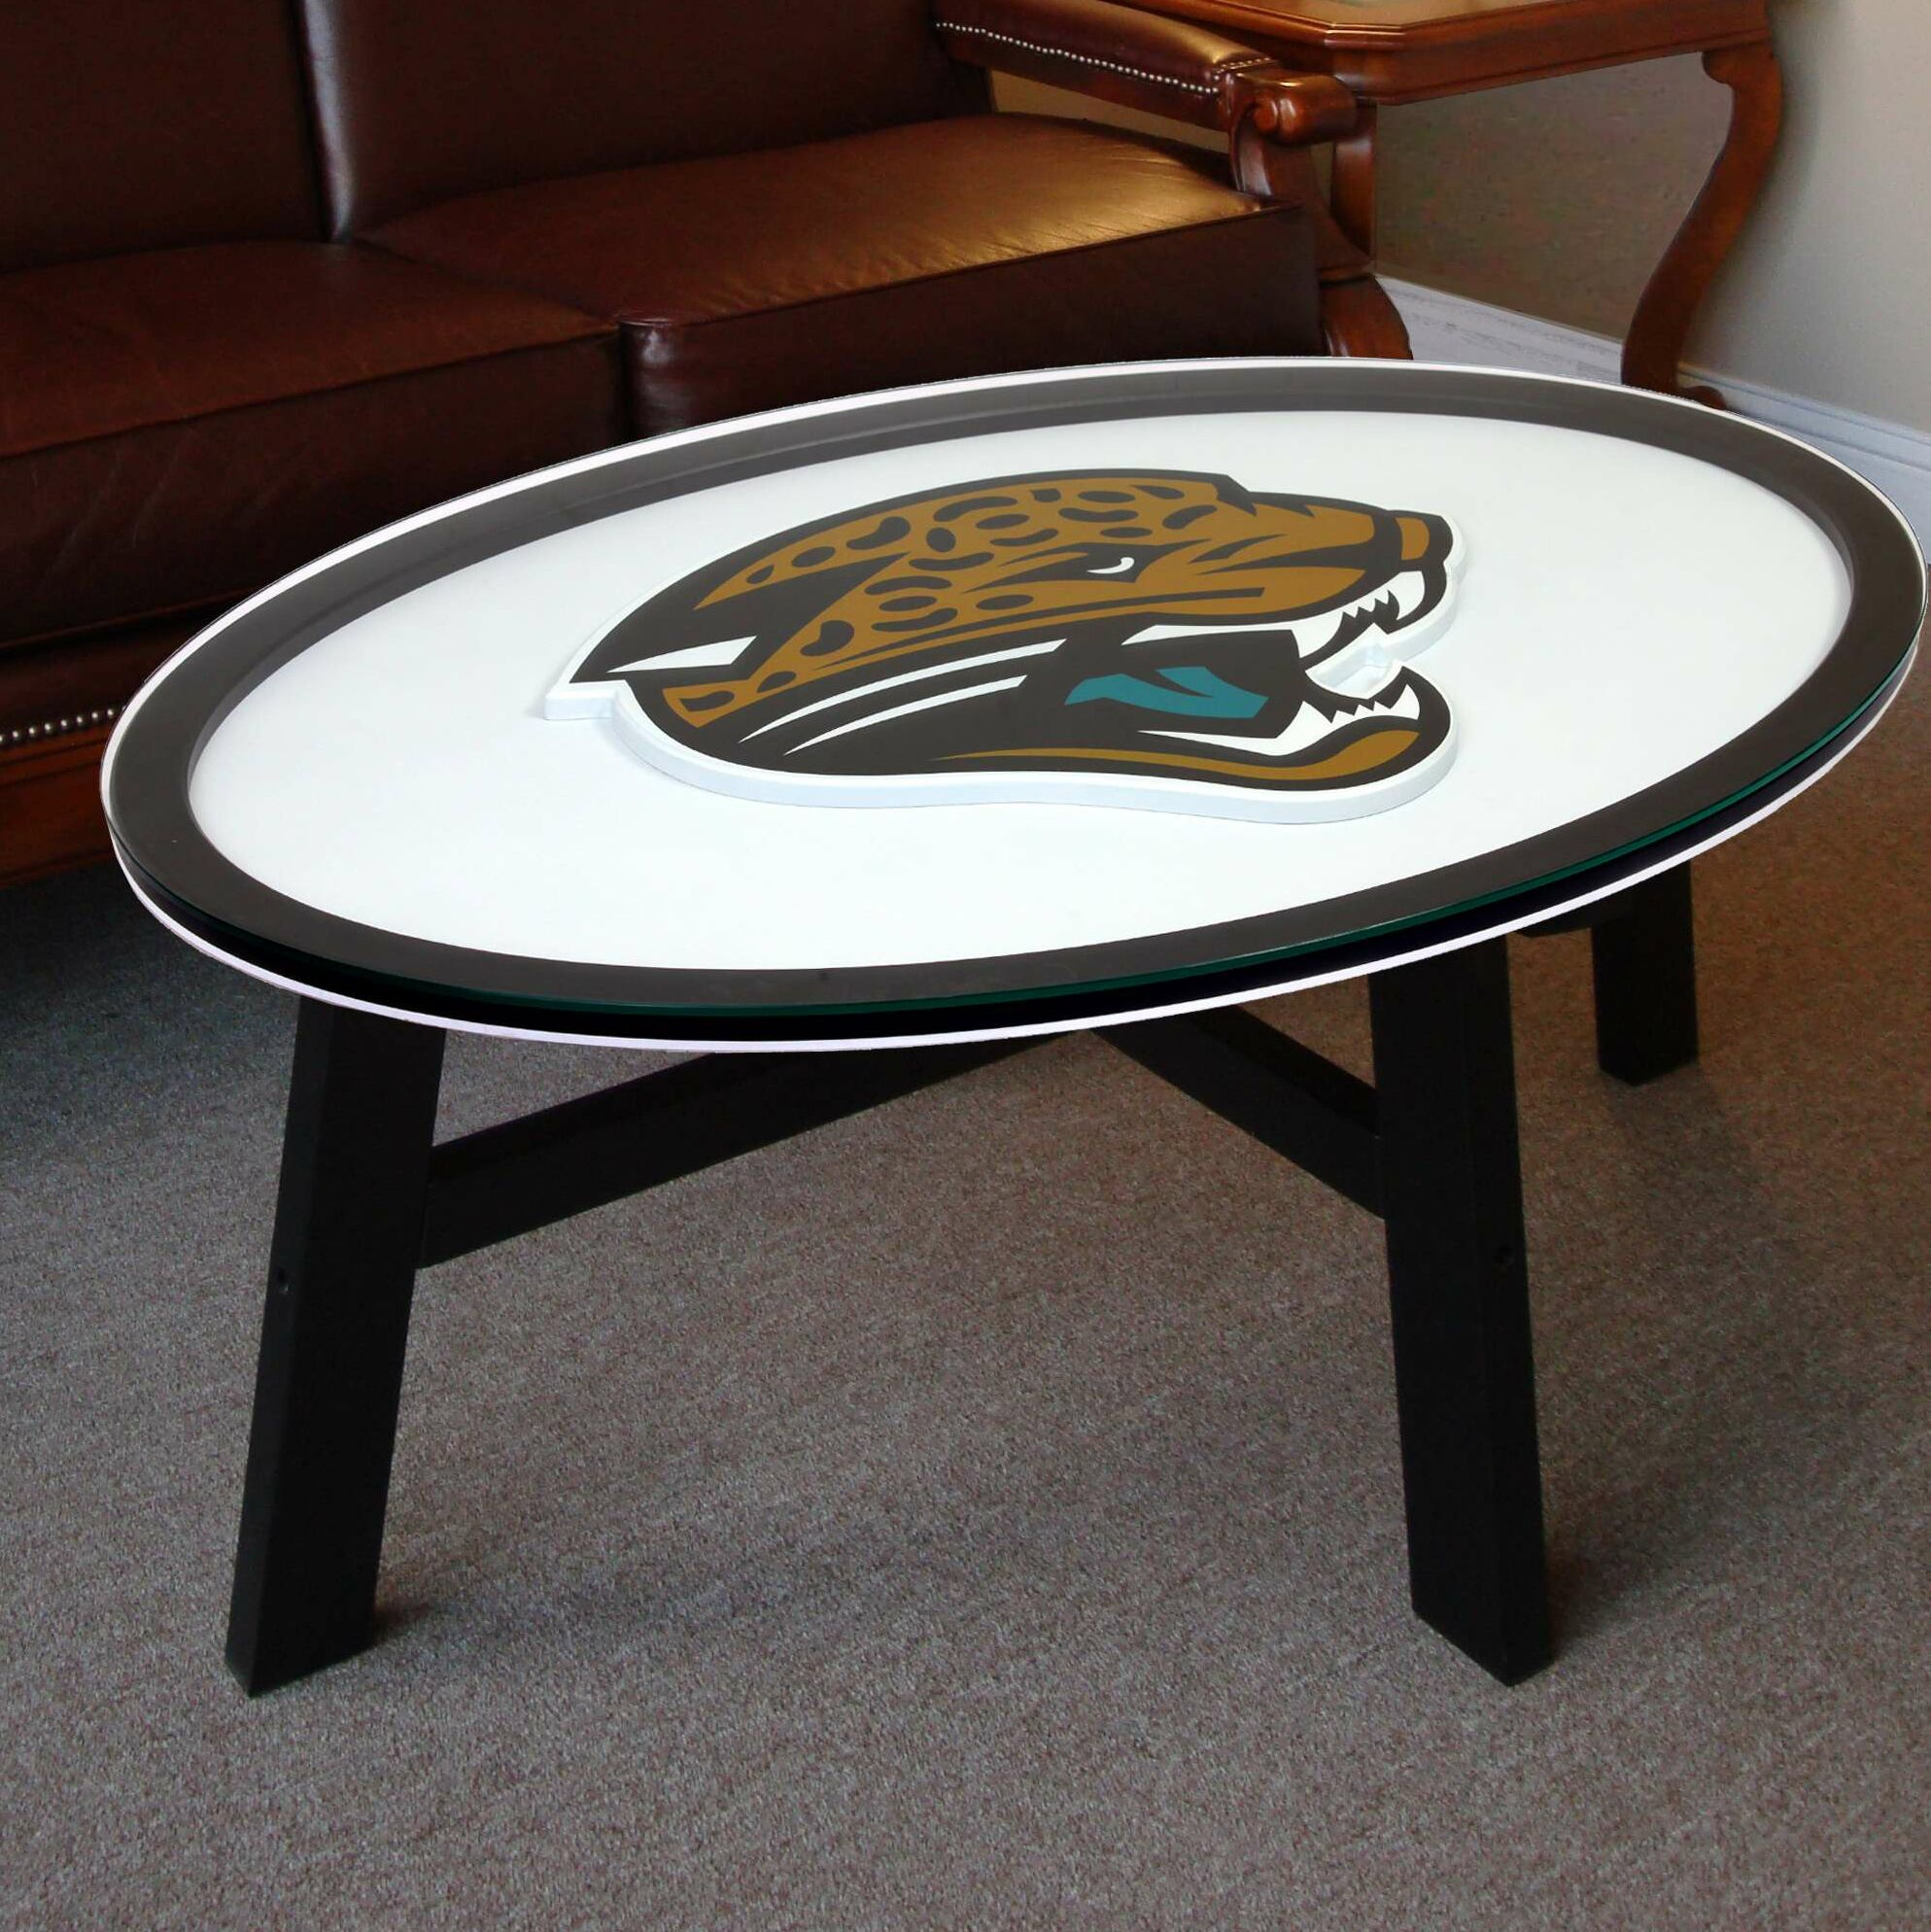 Nfl Logo Coffee Table NFL Team: Jacksonville Jaguars